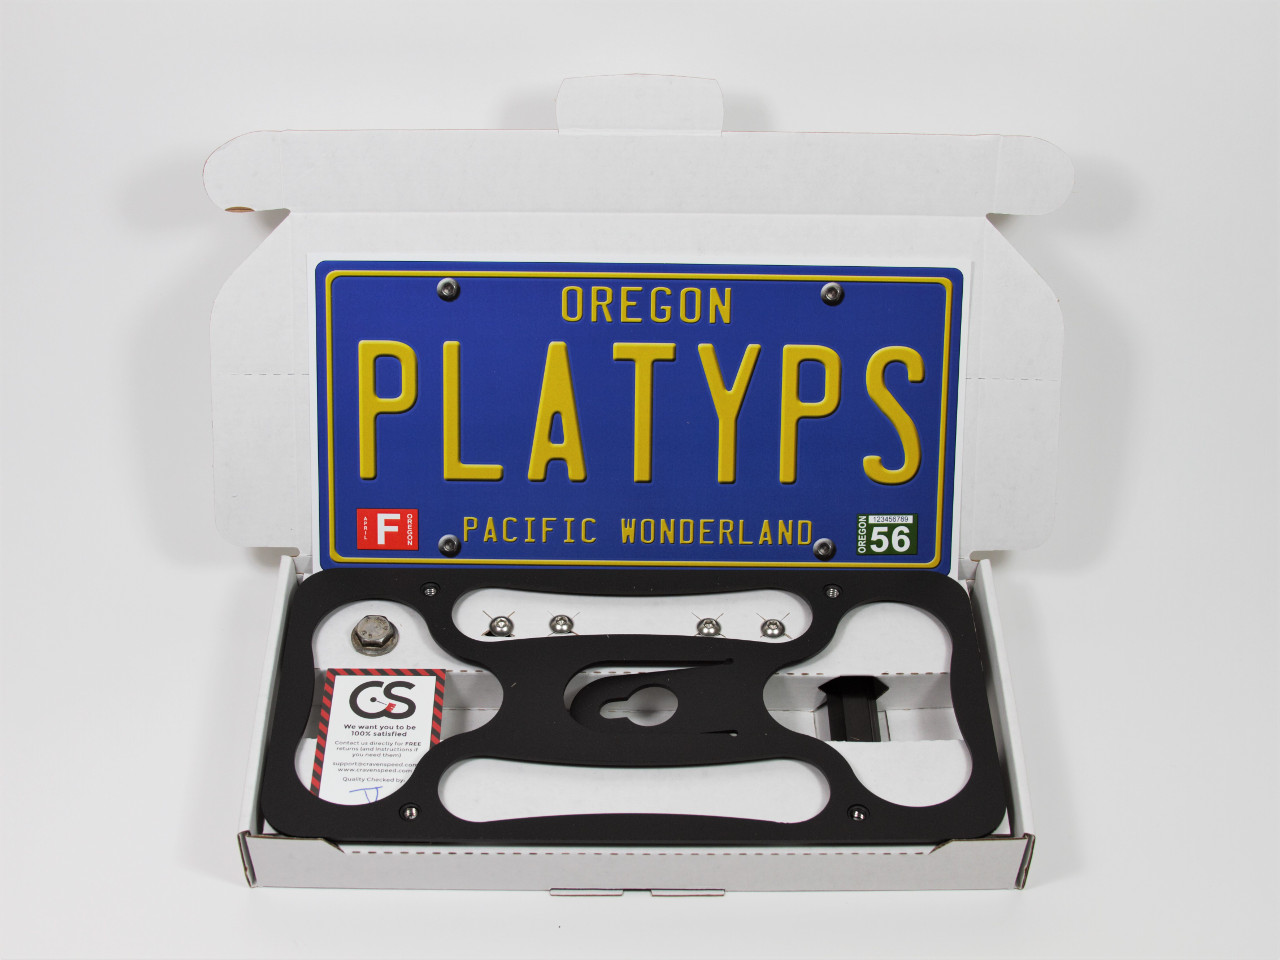 Assembled kit of The Platypus License Plate Mount for 2007-2013 BMW 328i Coupe and Convertible